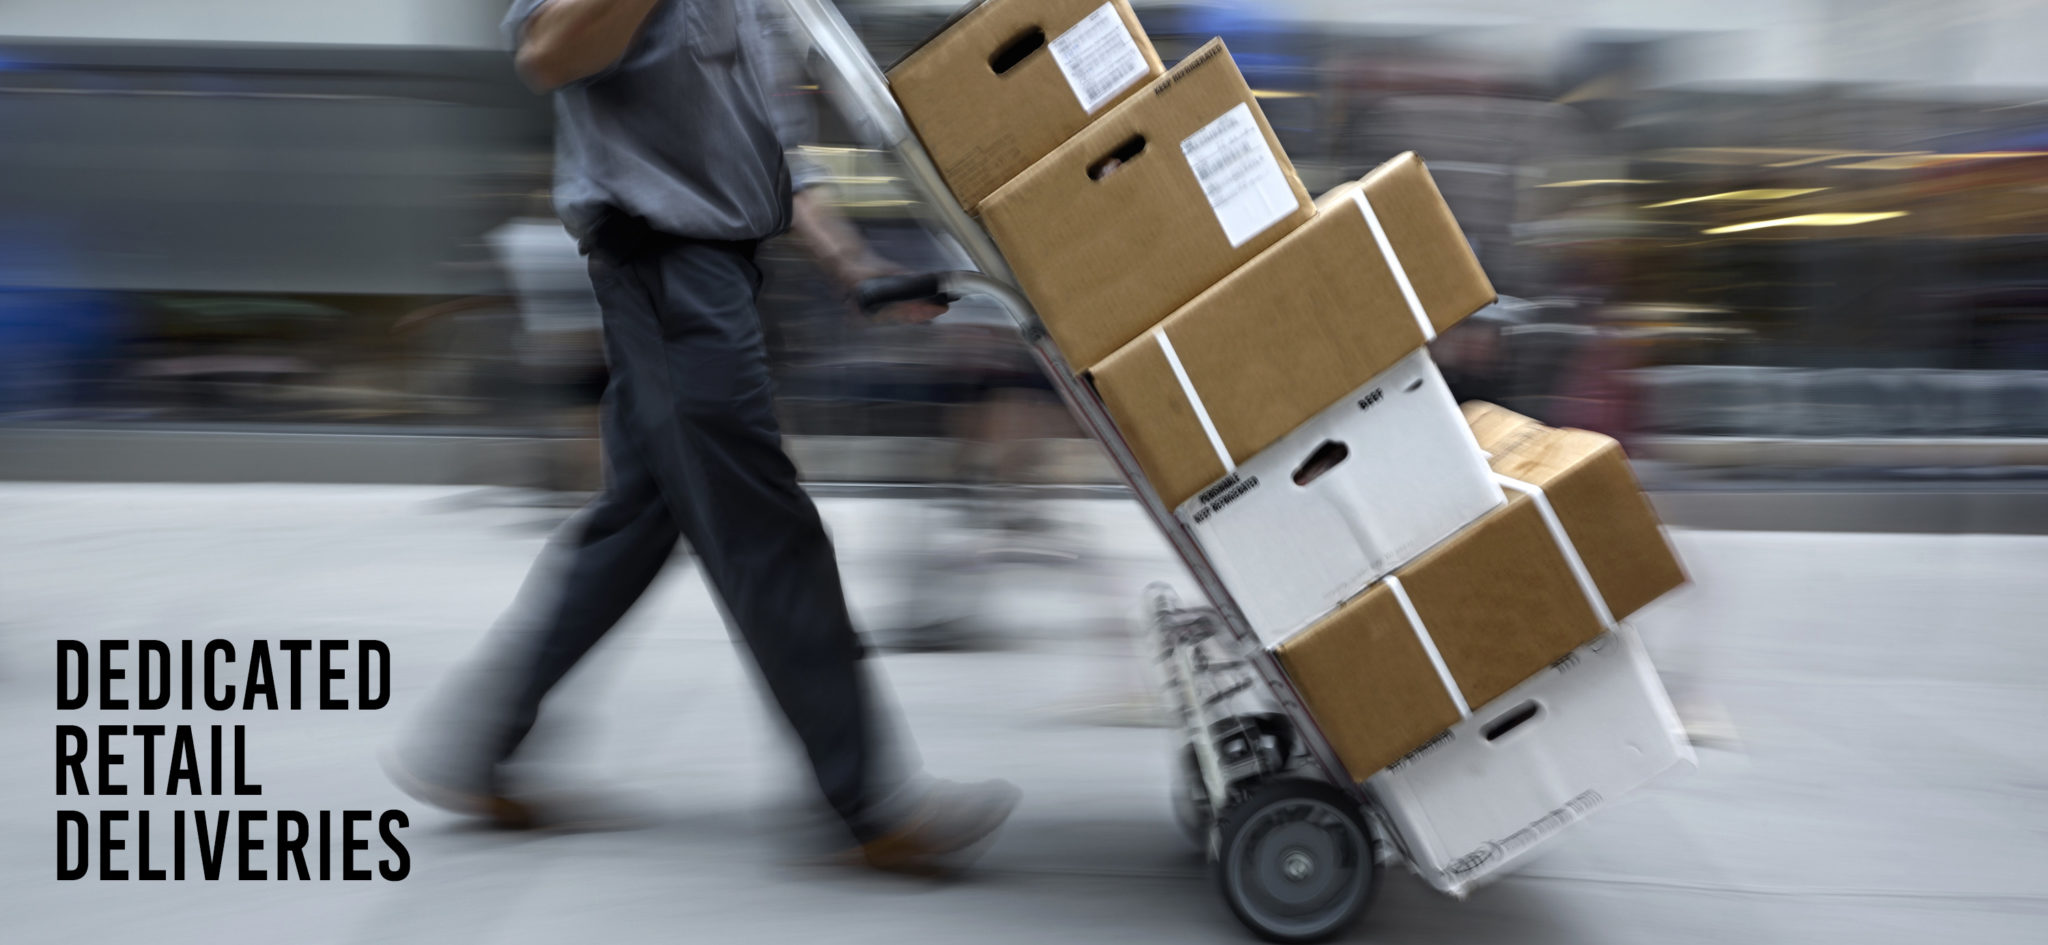 Dedicated Retail Deliveries